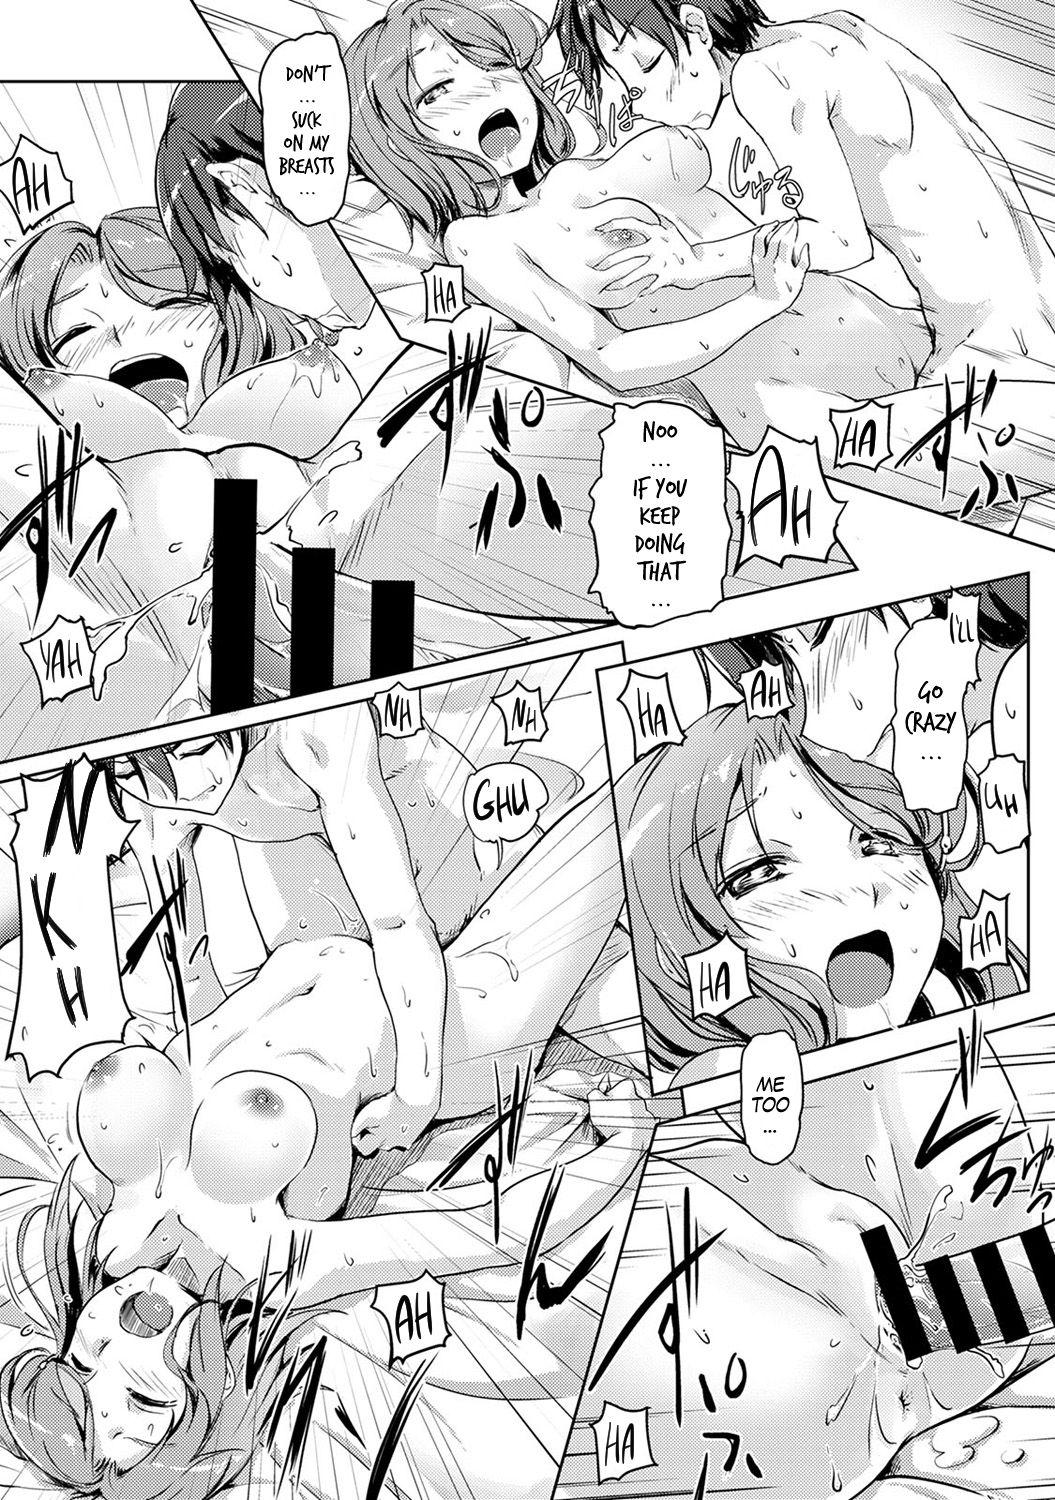 Ecchi Shitara Irekawacchatta!?   We Switched Our Bodies After Having Sex!? Ch. 1 23